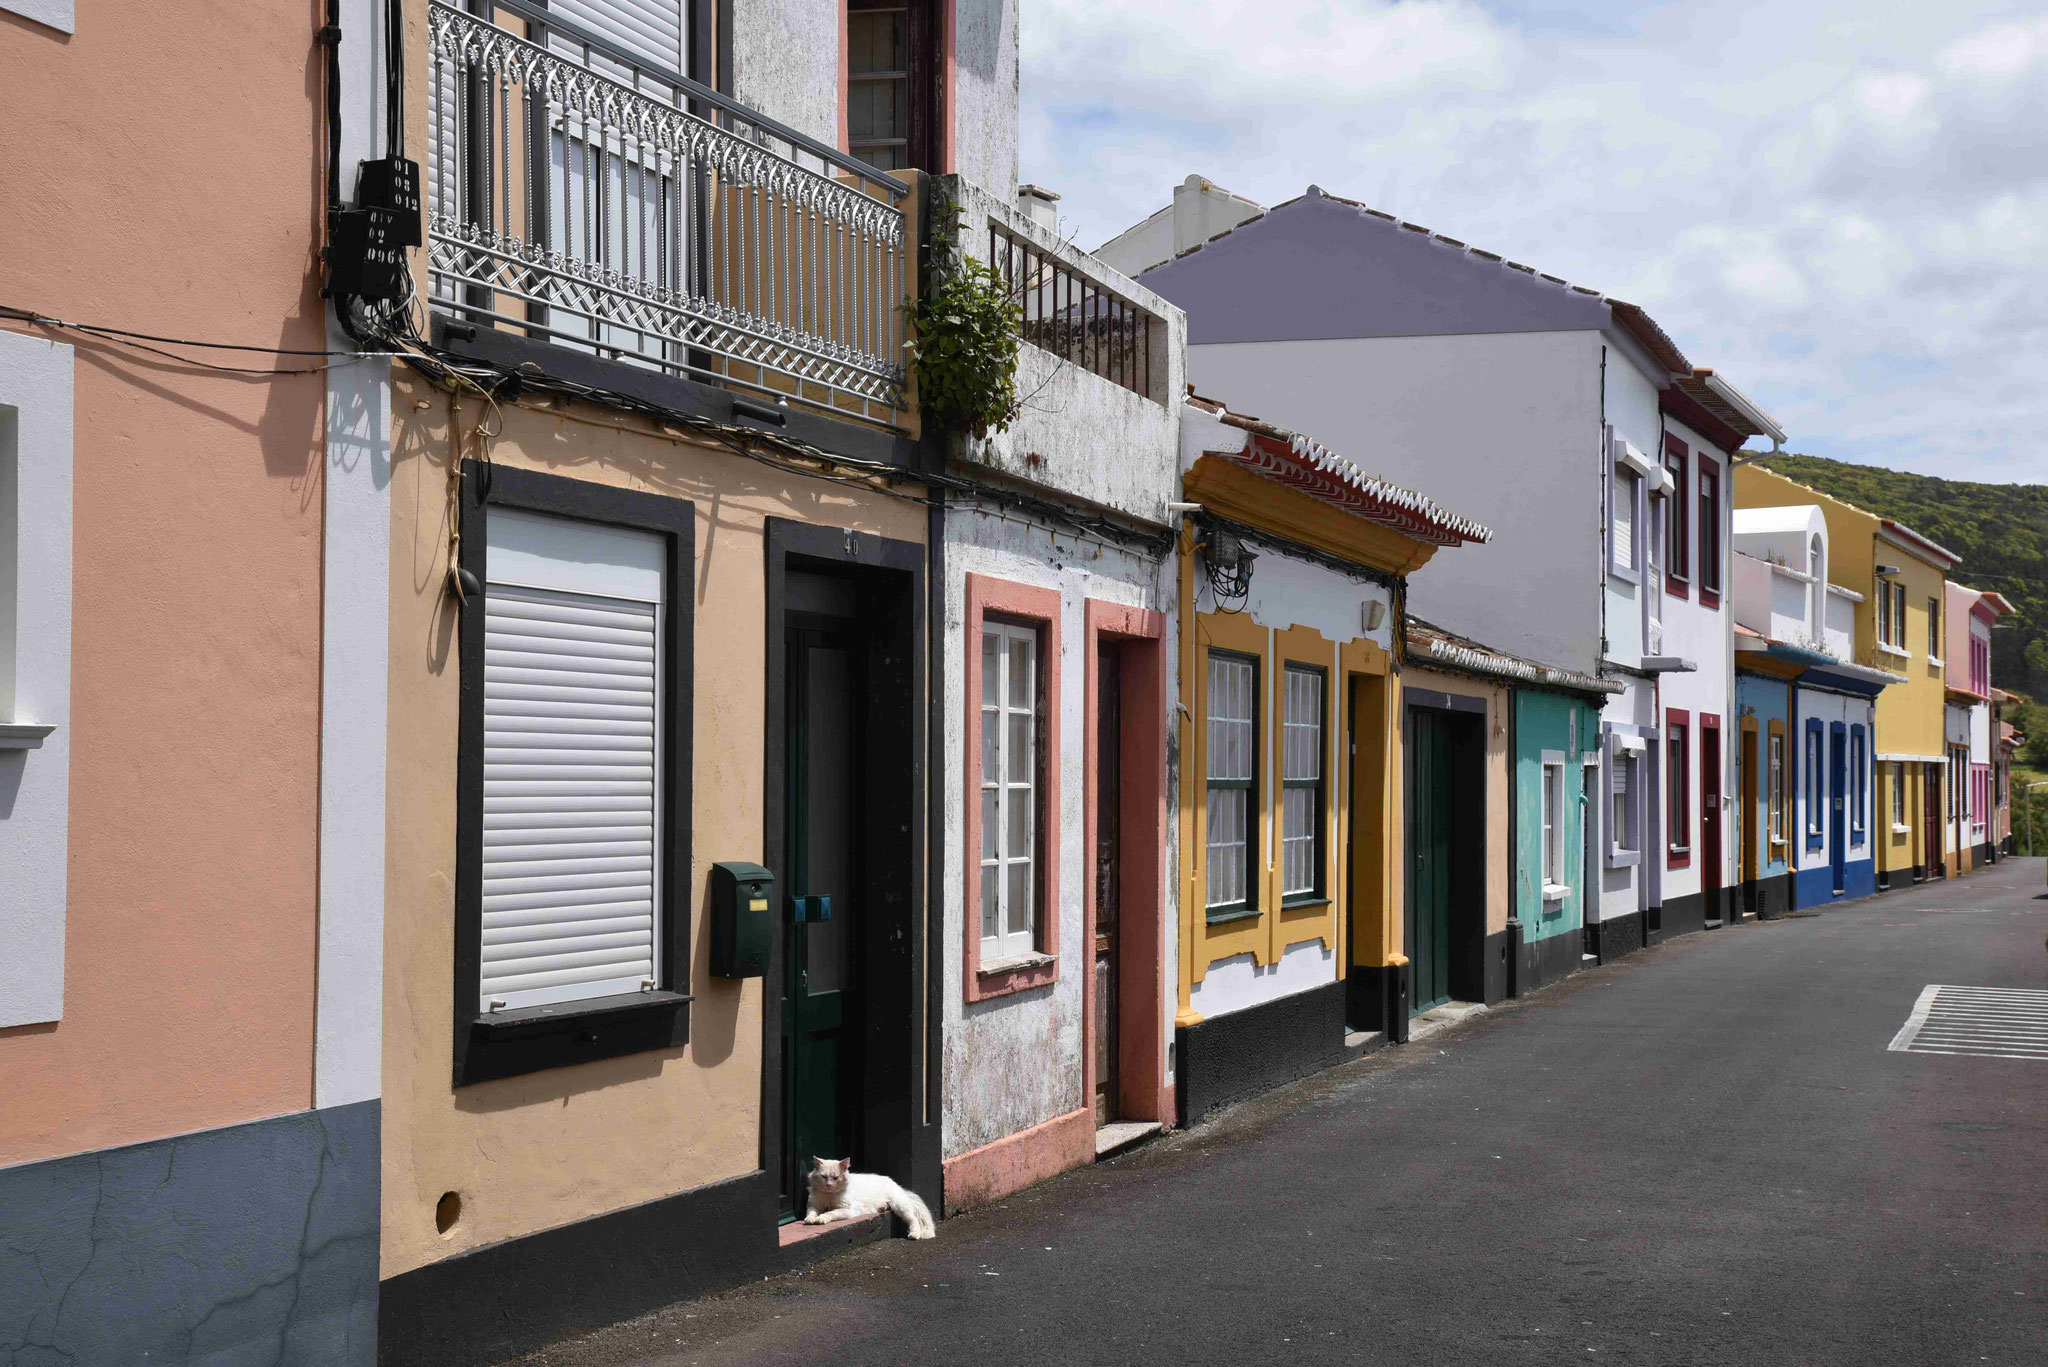 Straßenzug in Angra do Heroismo